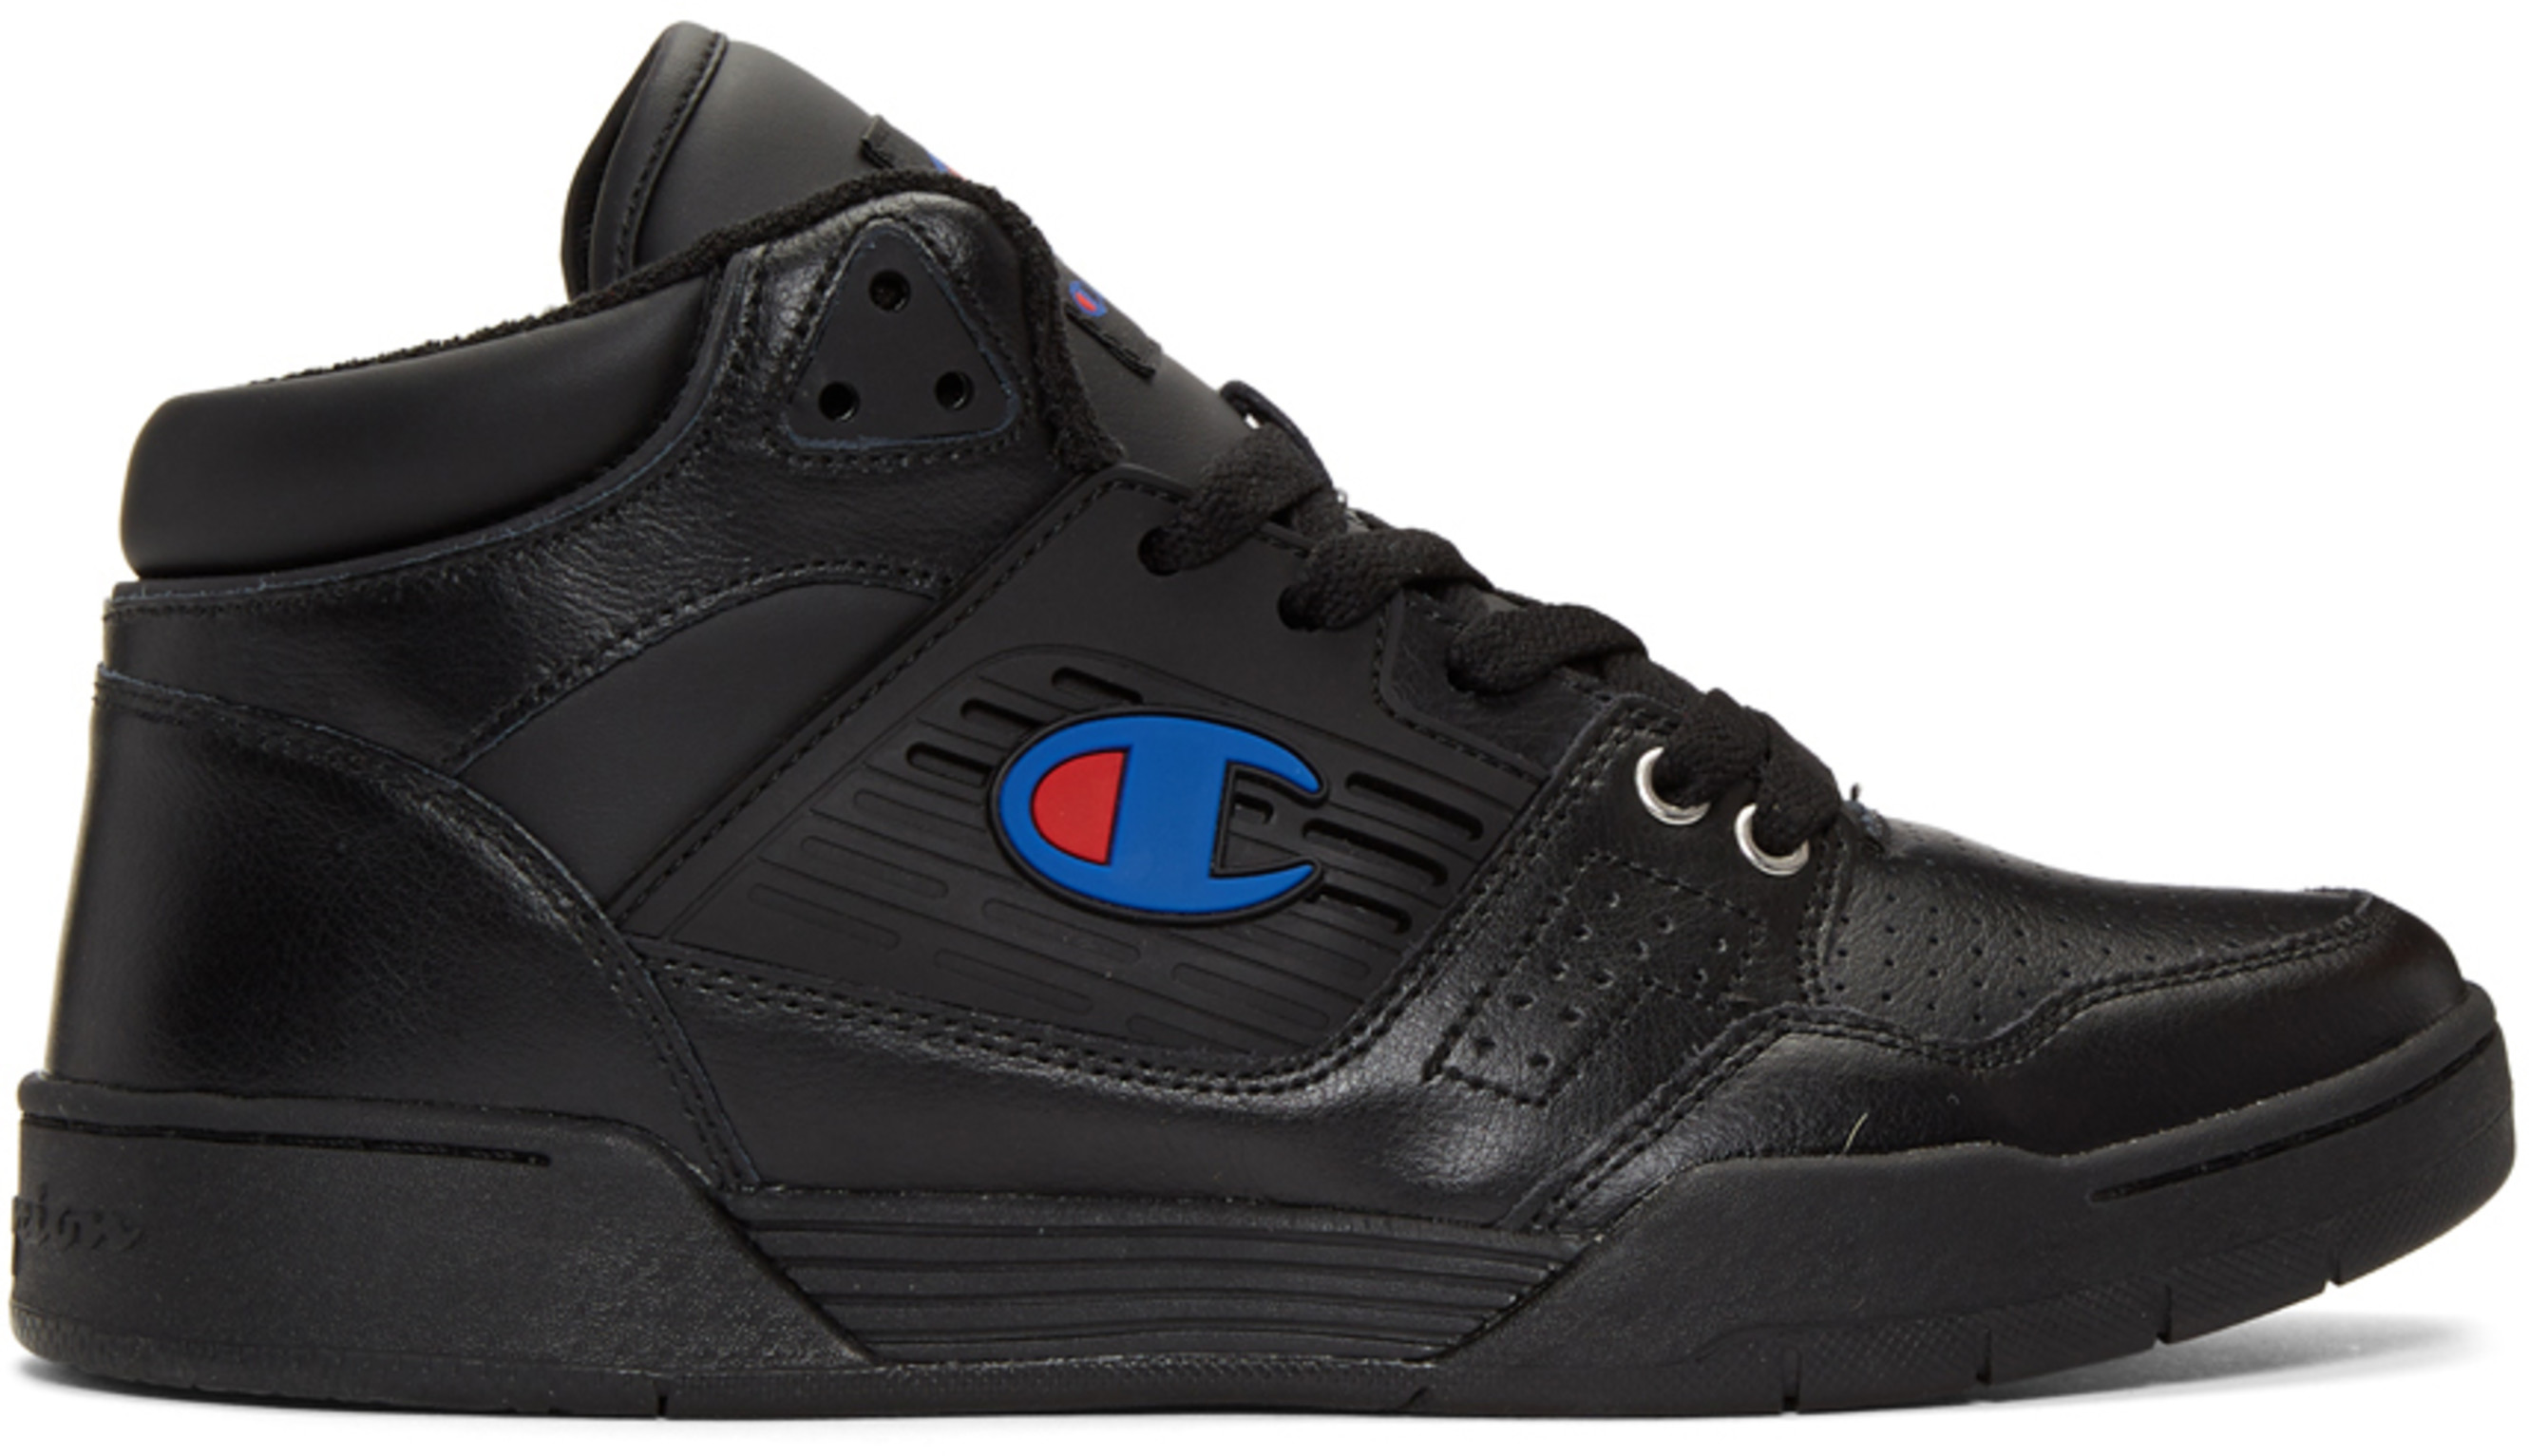 9a015a0997d Champion Reverse Weave sneakers for Men